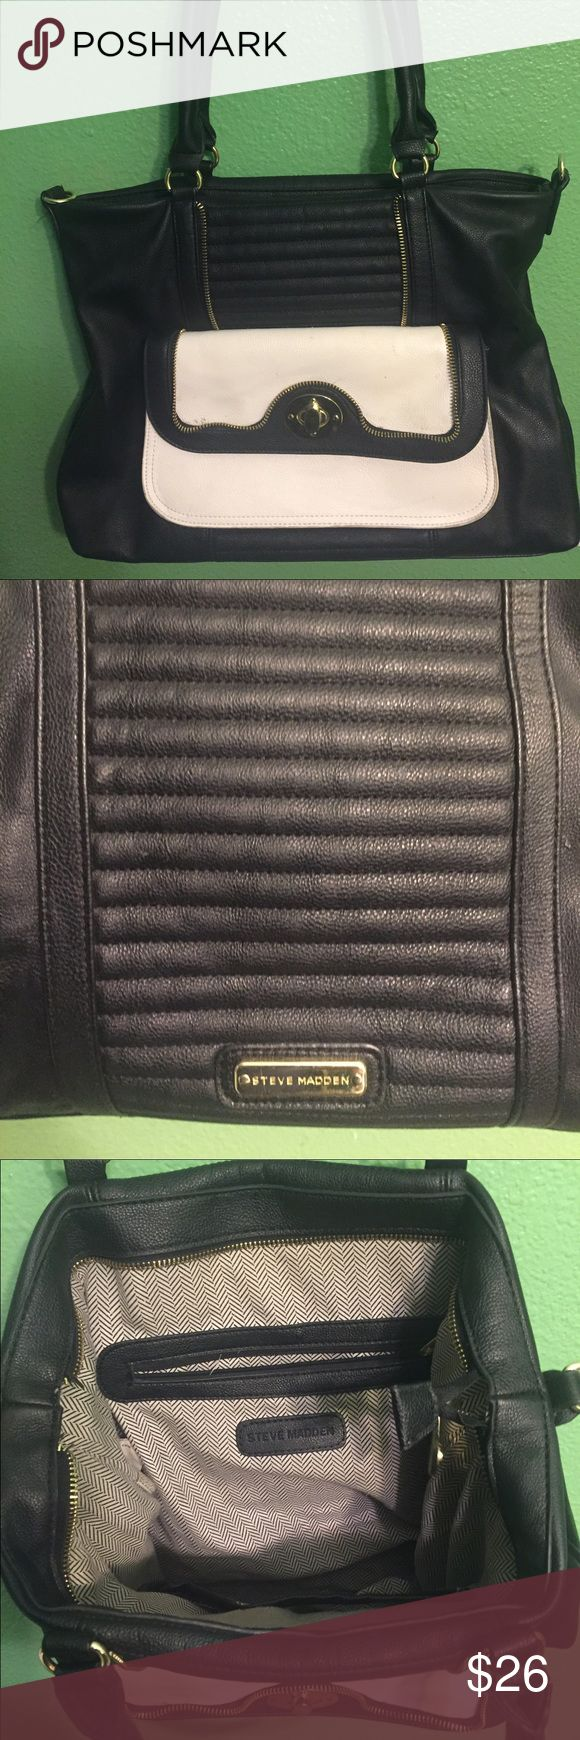 Steve Madden black and white handbag This bag is in great condition. Little signs of wear. There is a little nick on the hand top. But other than that no holes rips or stains. Comes from a smoke free home. Steve Madden Bags Shoulder Bags